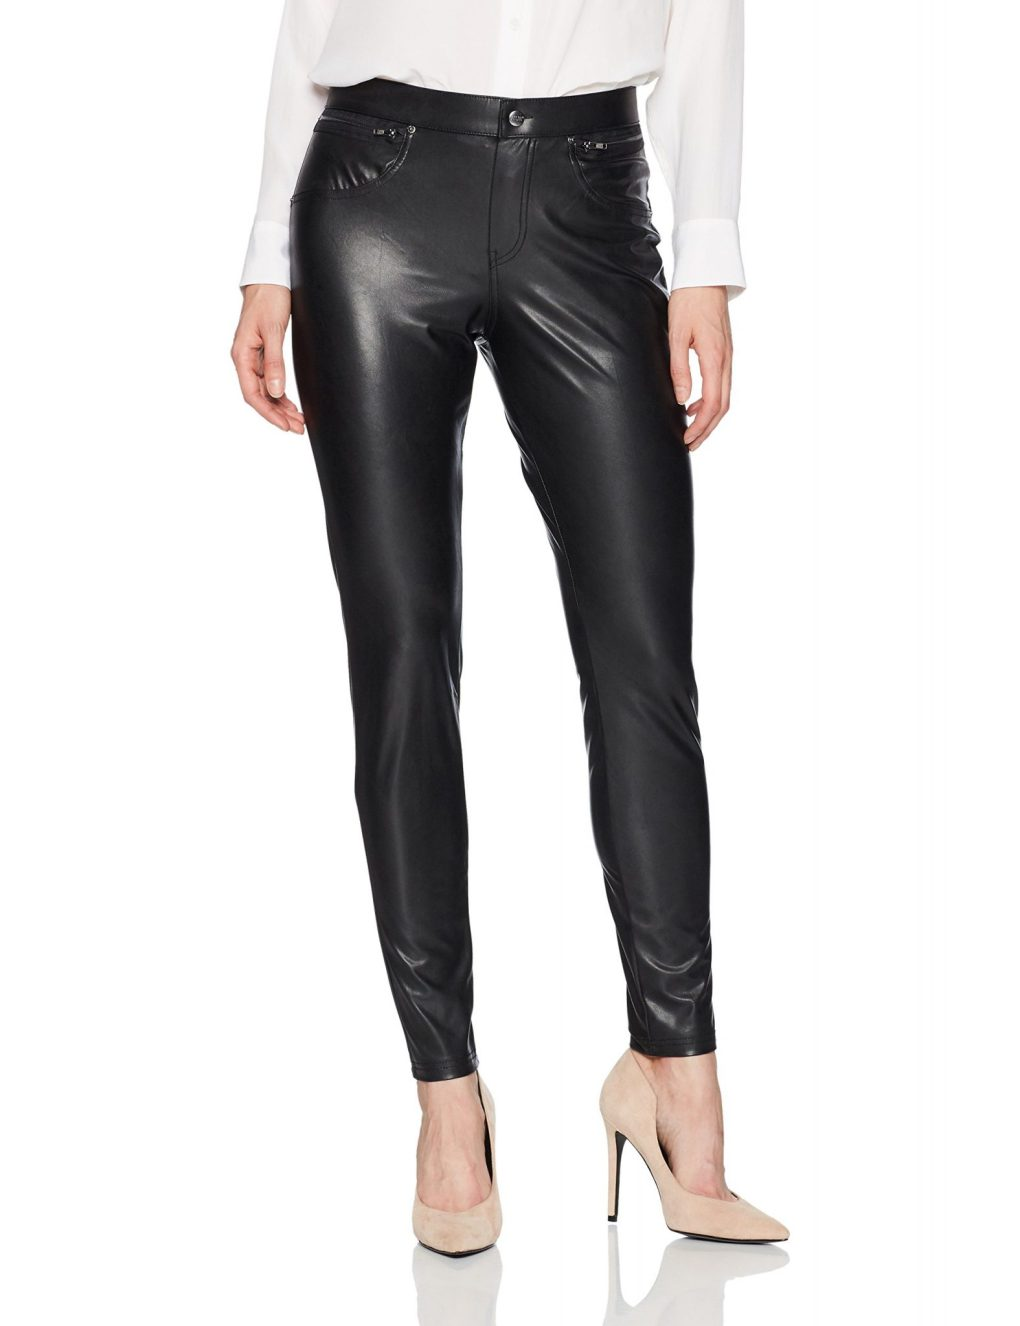 12 Best Faux Leather Leggings Hi Fashion